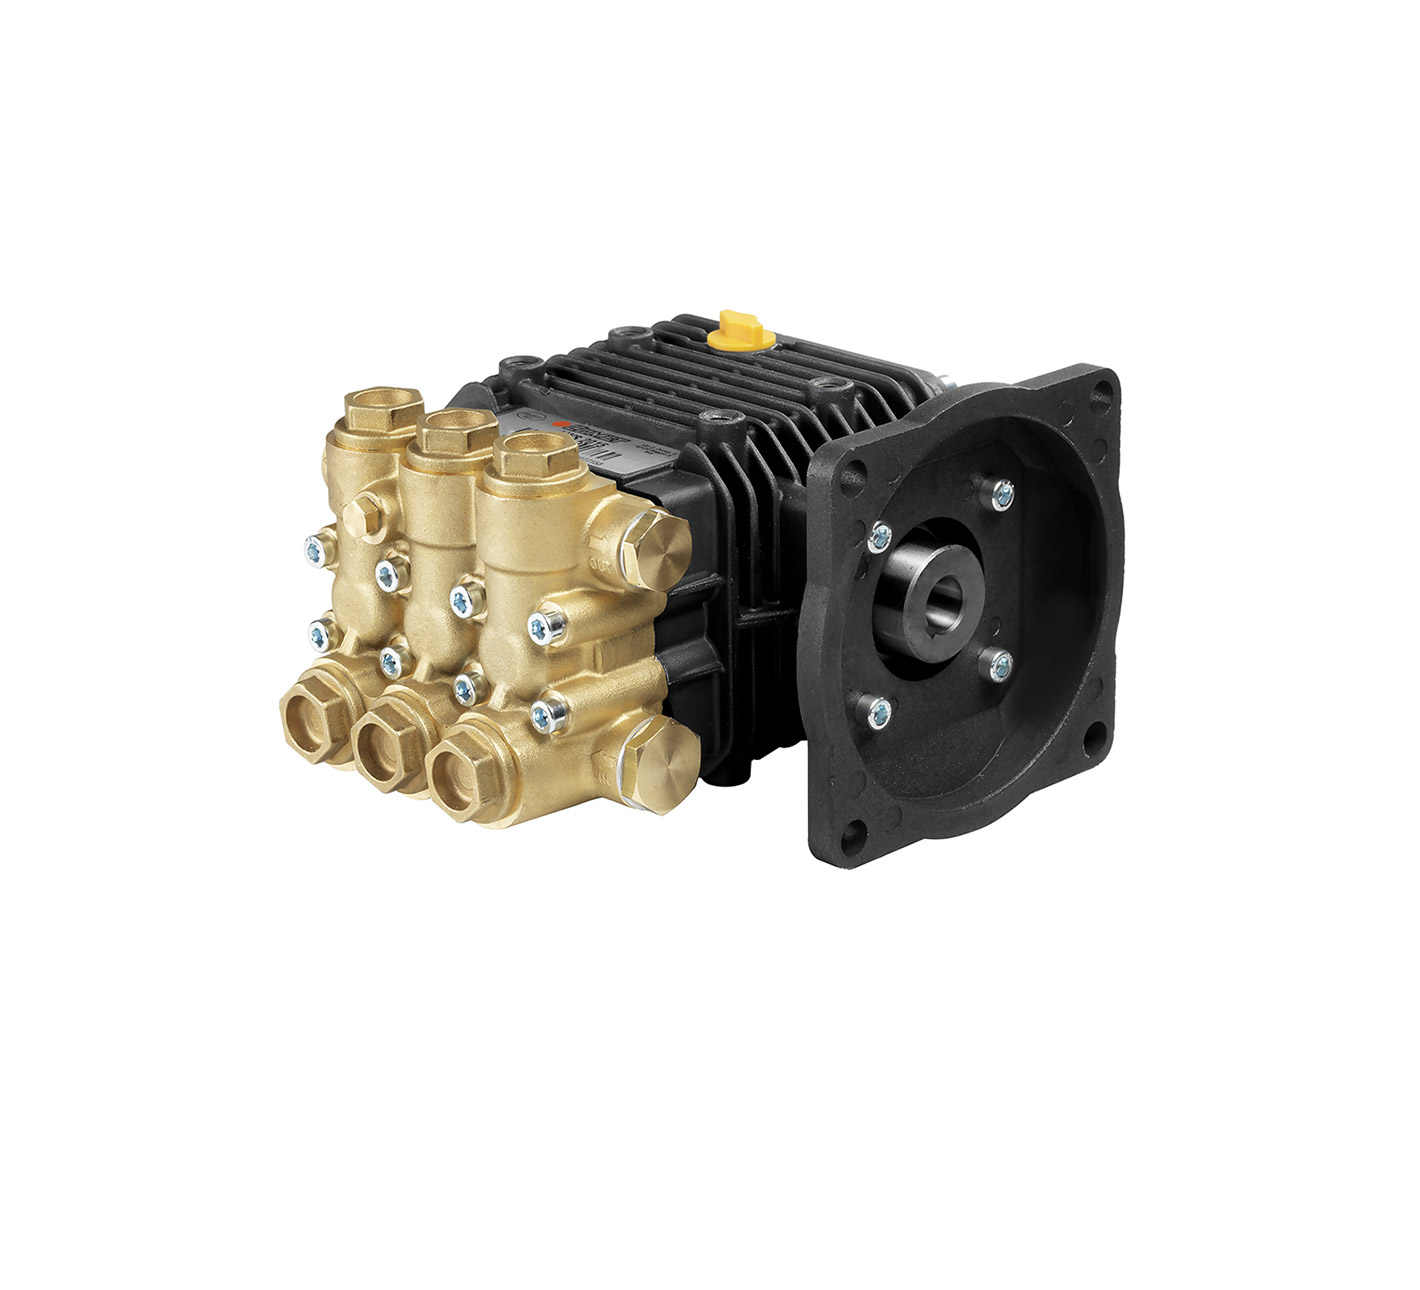 lws lwd Comet Industrial Pumps